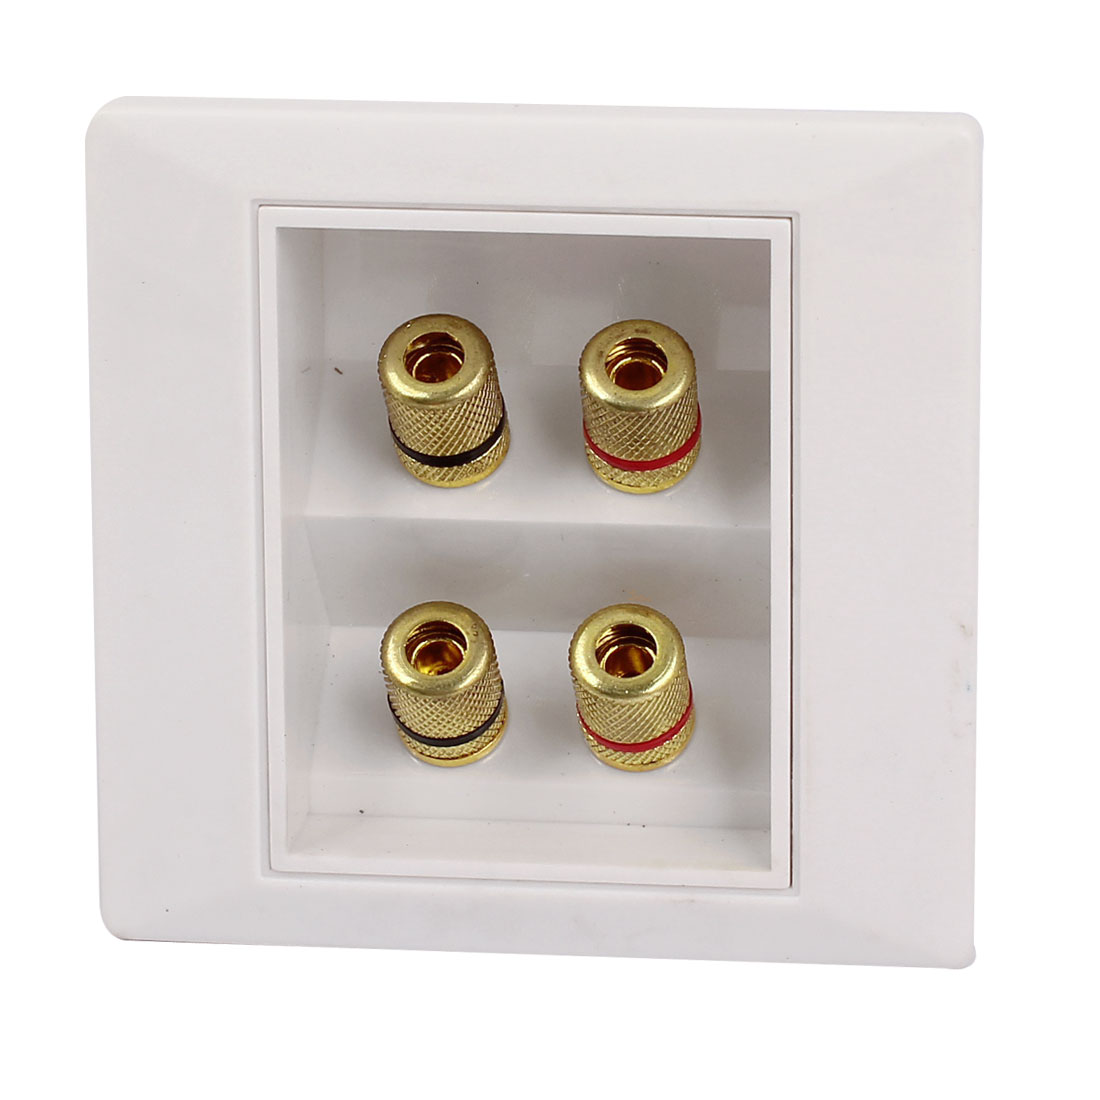 Audio System Four Adapter Banana Jack Wall Plate Panel Face Connector